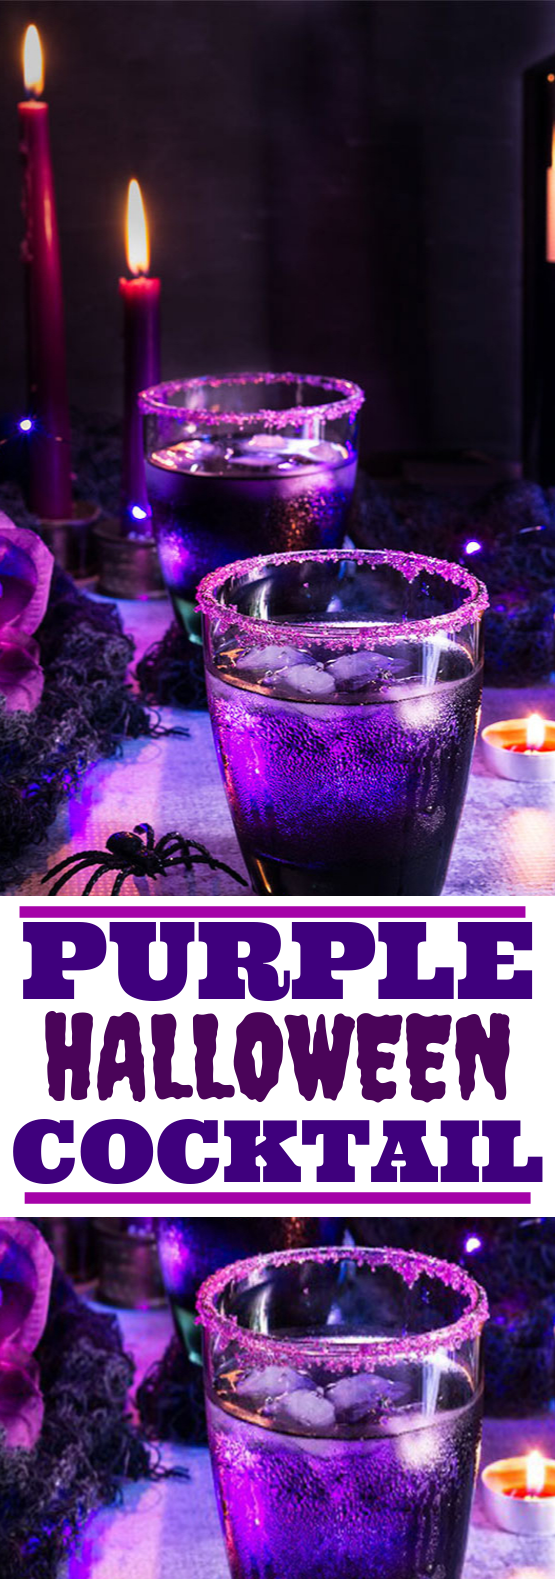 Purple Halloween Cocktail #drinks #cocktails